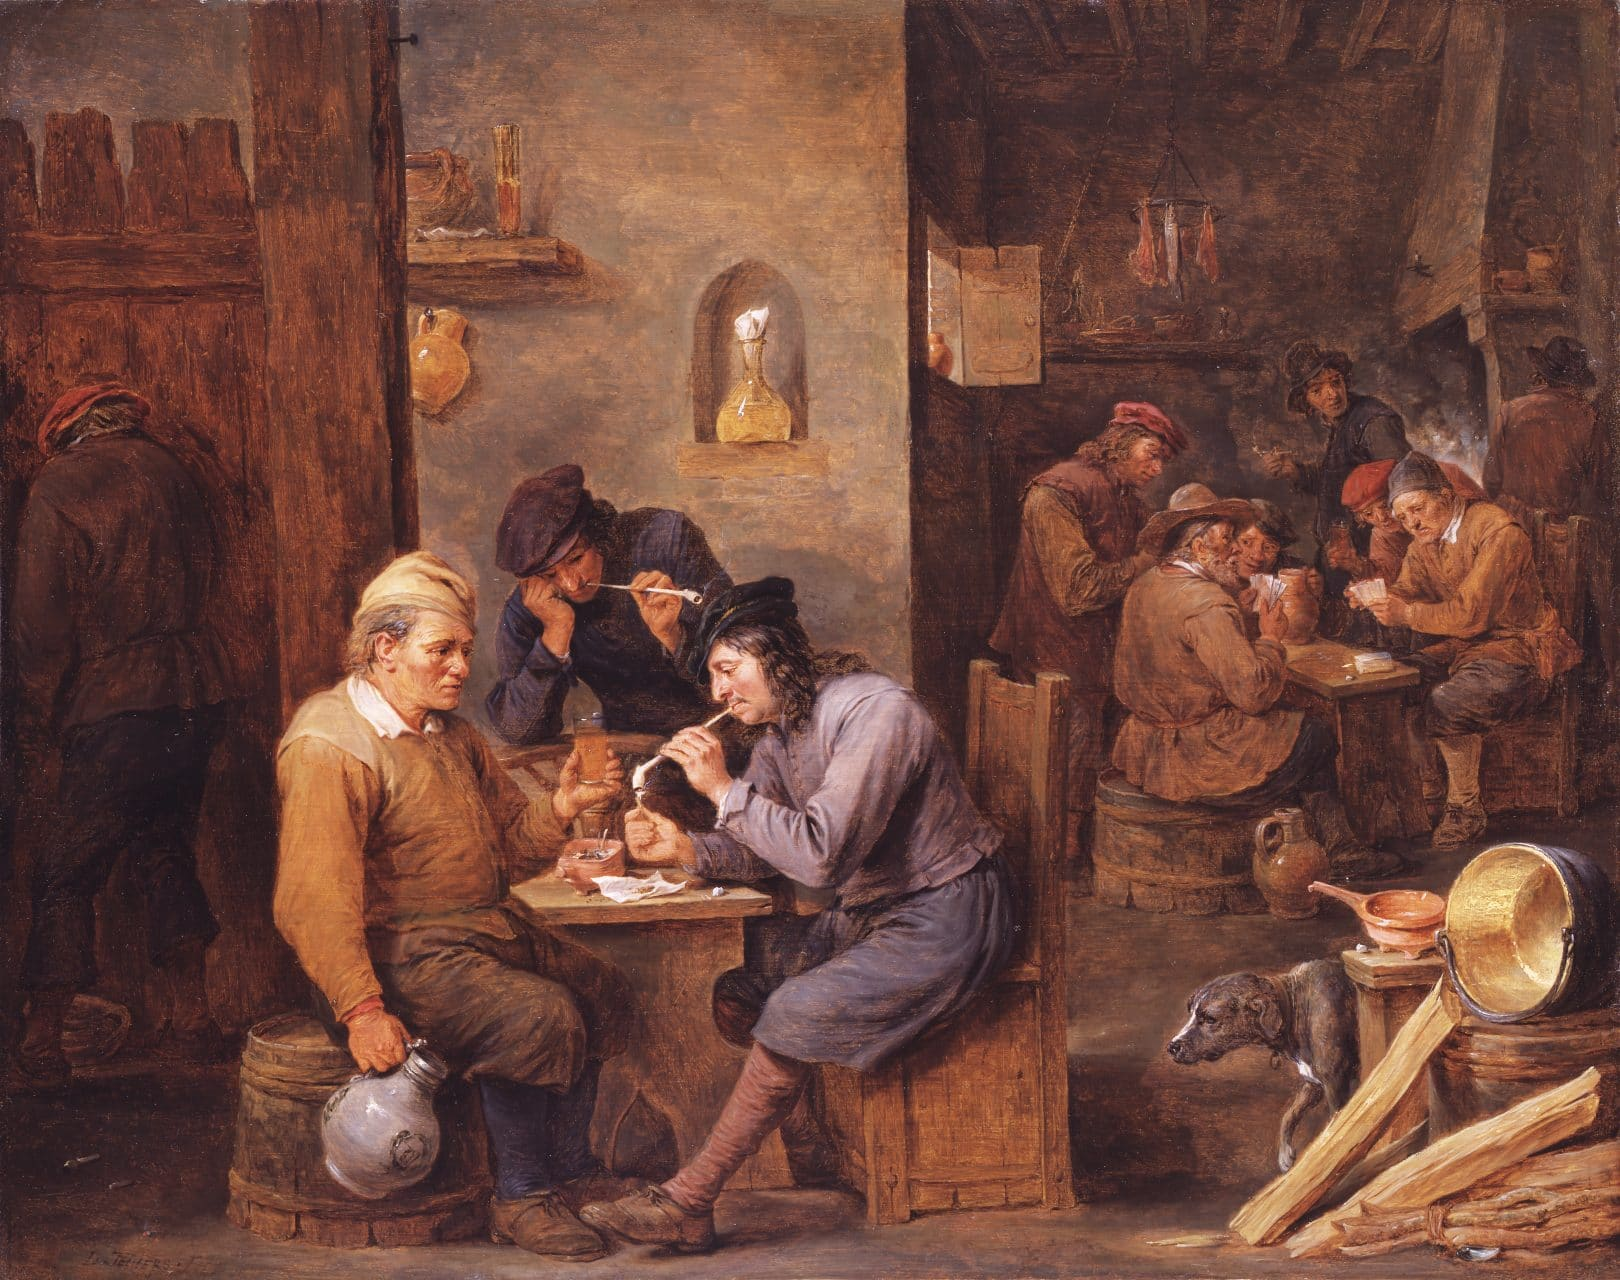 David Teniers the Younger, Smokers in a Tavern, ca. 1660.